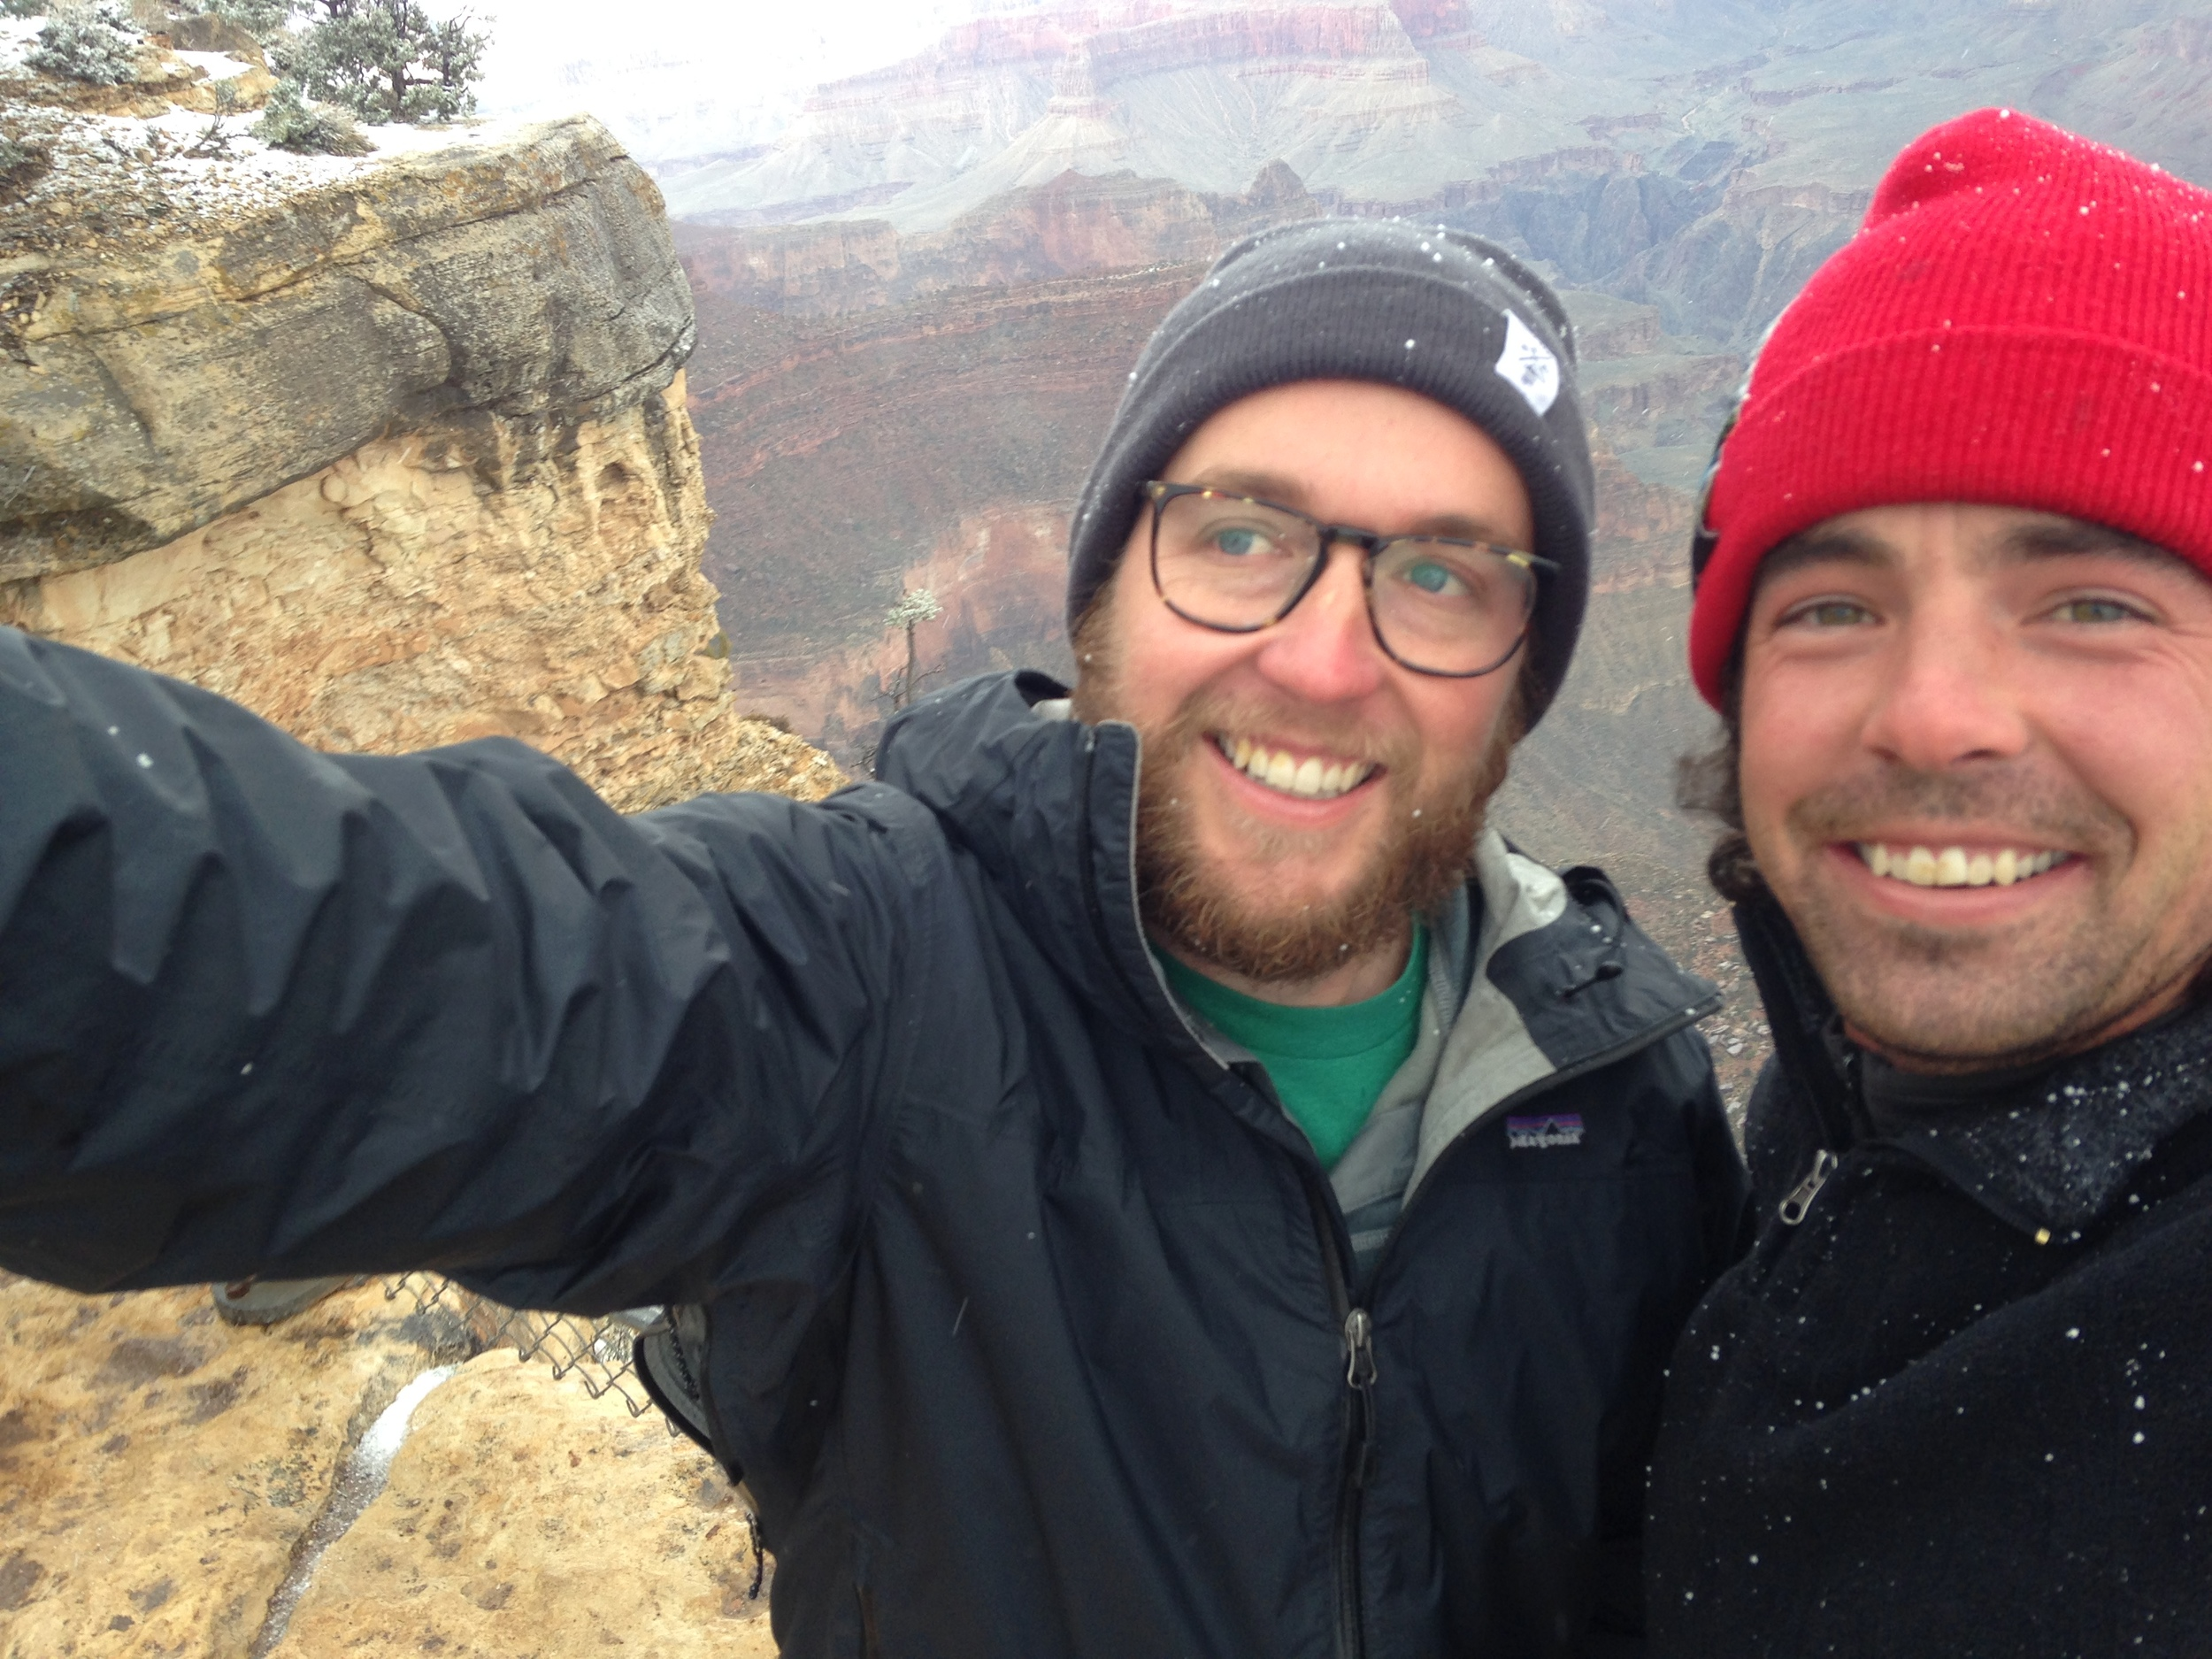 Ben Hitch and myself getting snowed on at the Grand Canyon. Arizona